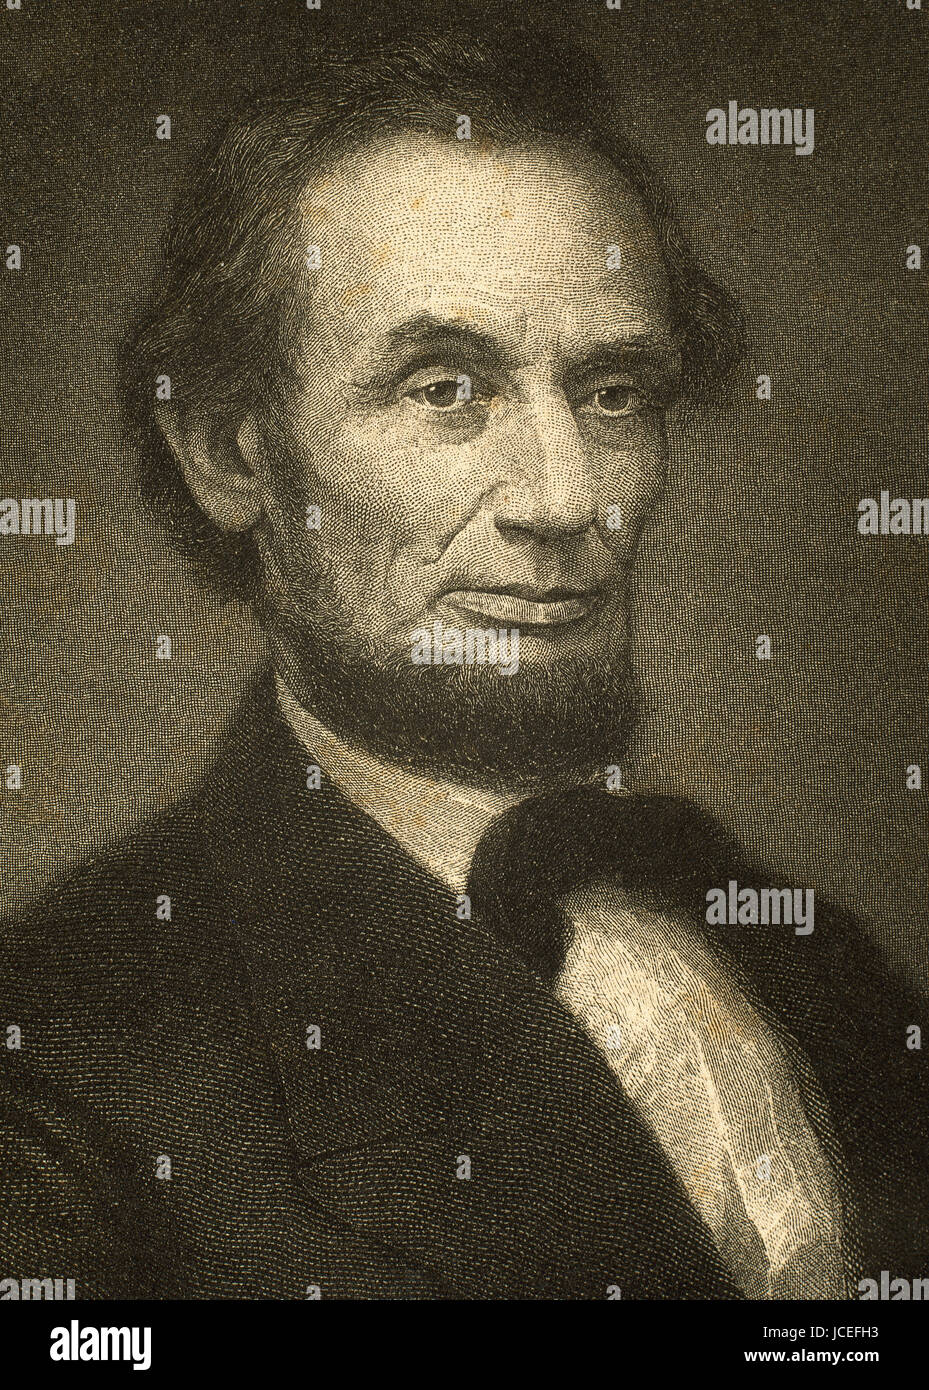 Abraham Lincoln (1809-1865). American Politician and lawyer.16th President of the United States. Portrait. Engraving. - Stock Image